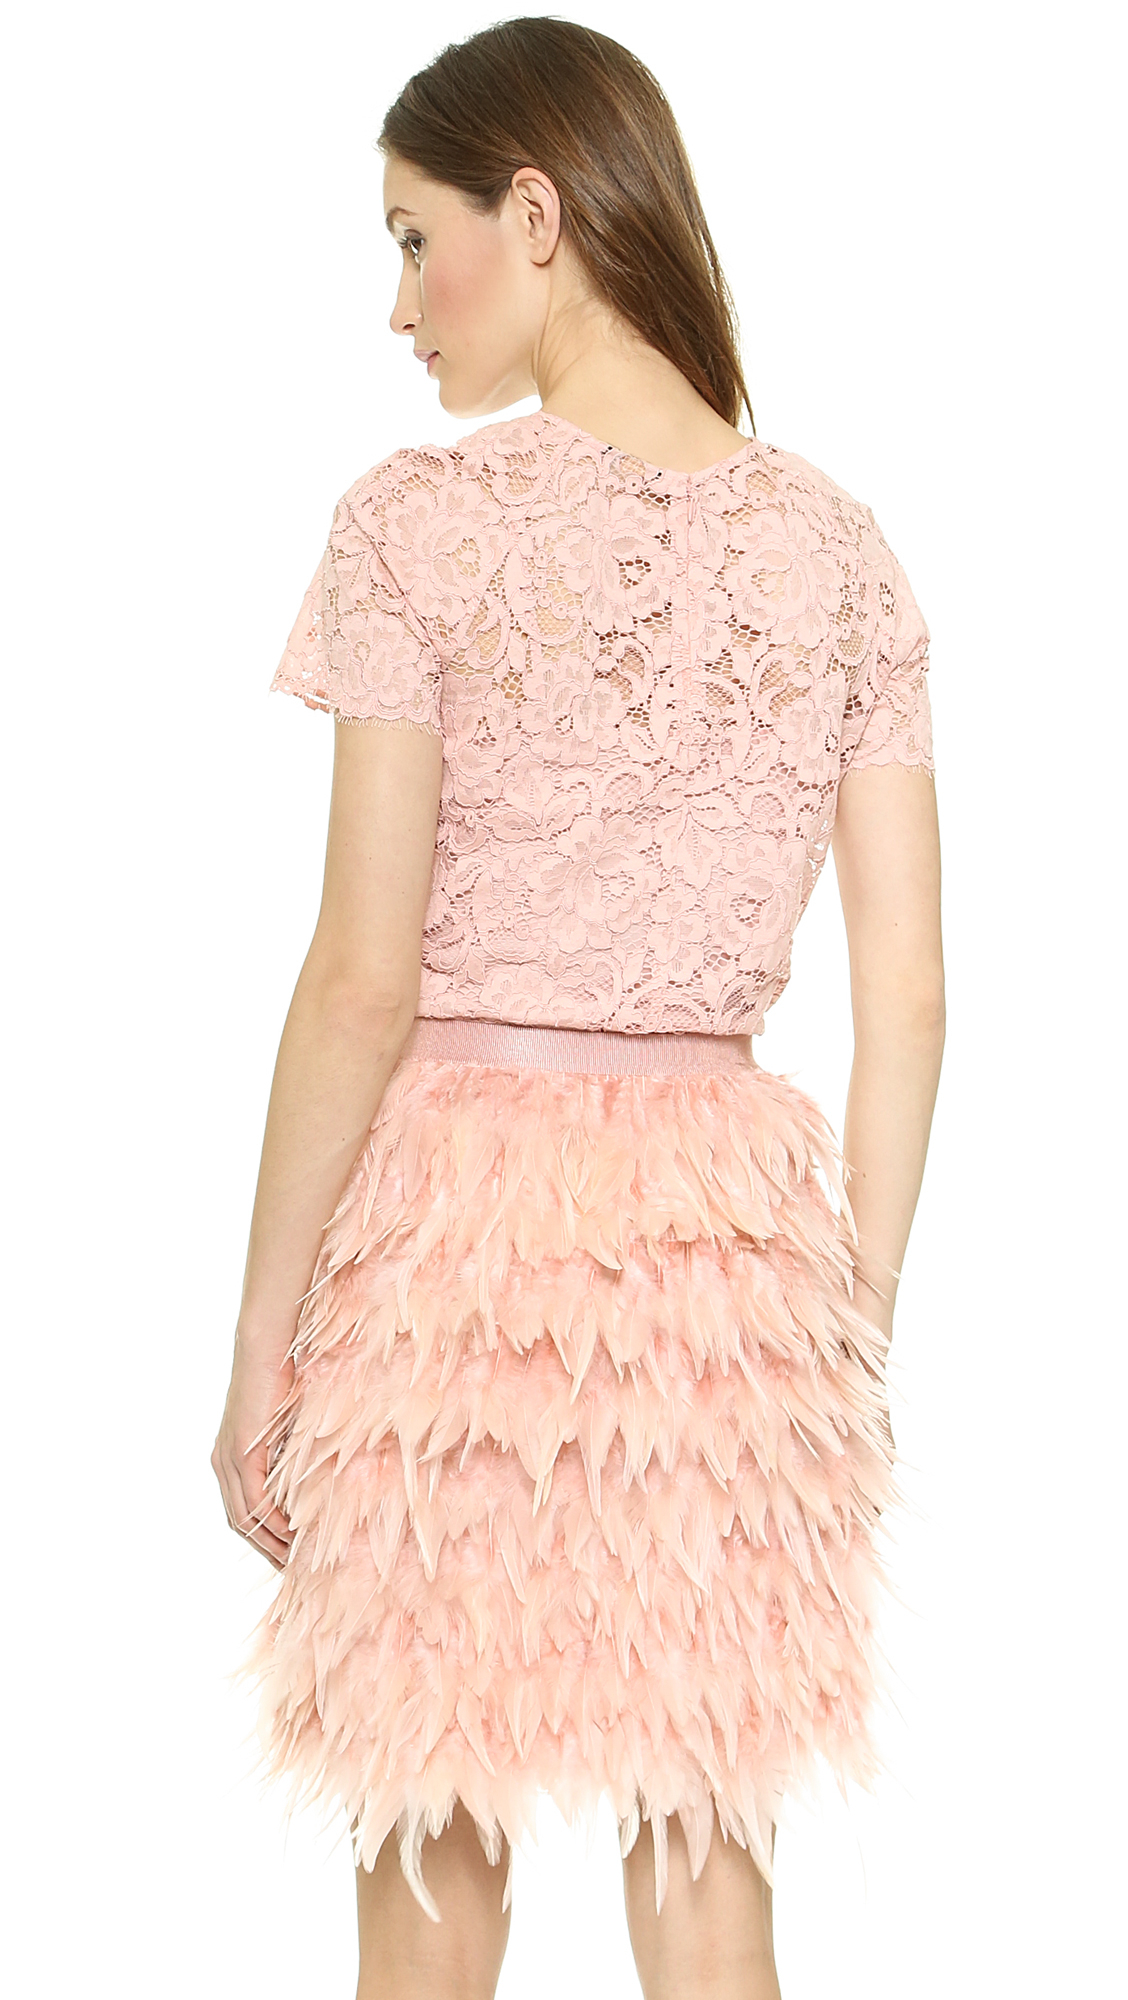 Lyst - Dkny Short Sleeve Lace Top - Blush in Pink